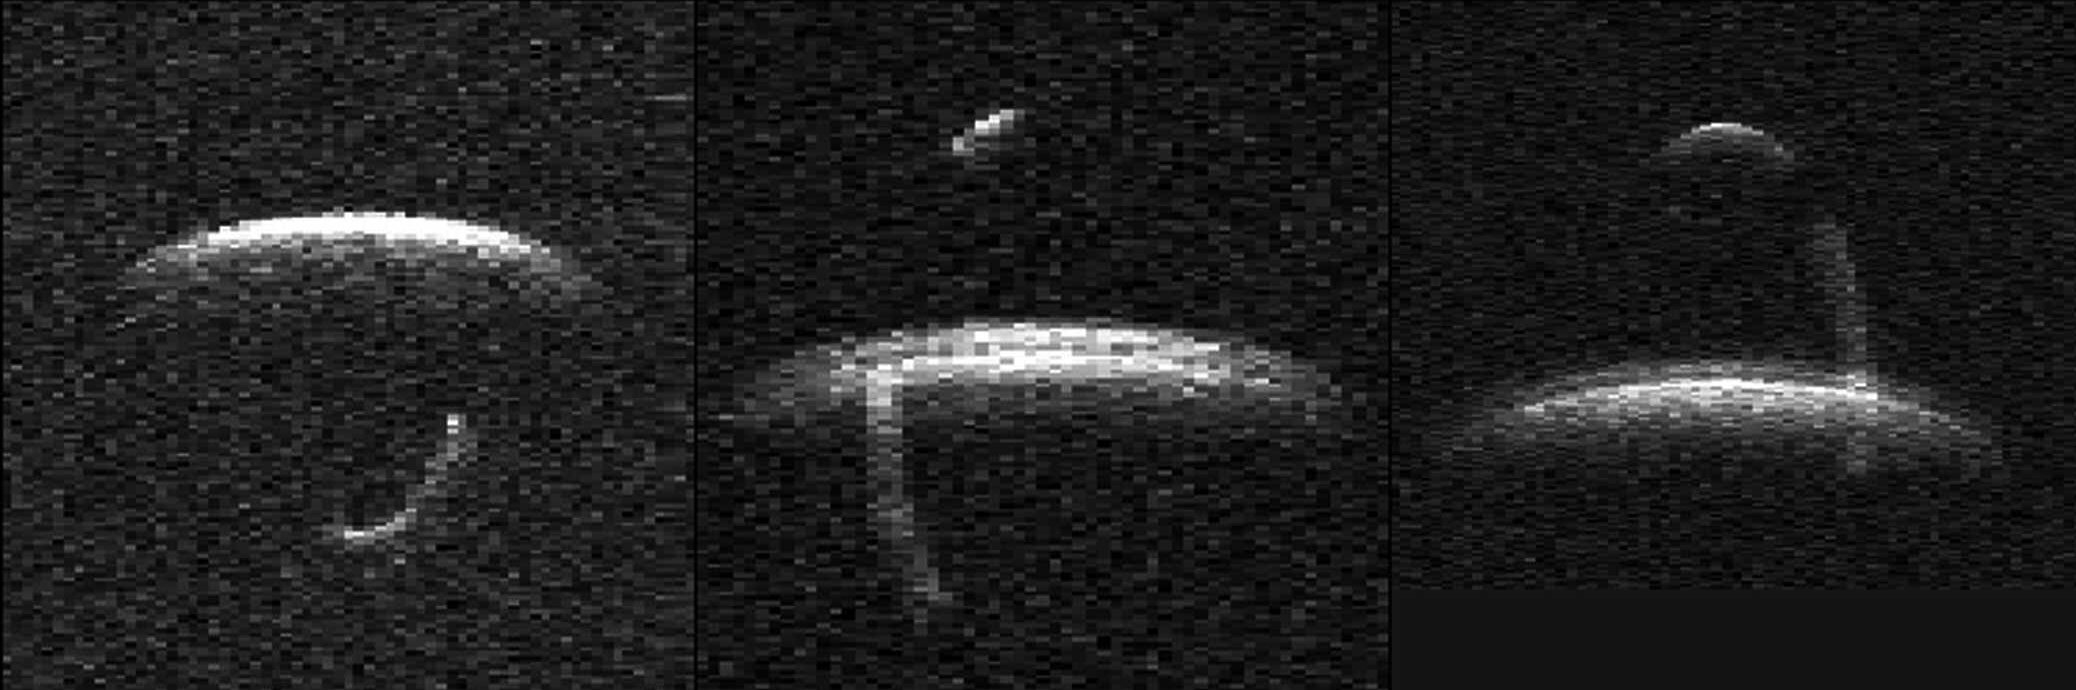 Description of . Astronomers captured this radar image of binary asteroid 1999 KW4 when the two space rocks passed within 3 million miles of Earth between May 23-25, 2001. The three frames show several-hour time exposures of a smaller moon, about one-quarter of a mile across, orbiting in a clockwise fashion a companion three times as large. The larger asteroid appears blimp-like because it is rotating faster than its smaller companion. Astronomers announced Wednesday, May 30, 2001, that the discovery of asteroid 1999 KW4 marks only the eighth time astronomers have successfully imaged an asteroid locked in an orbital embrace with a companion. (AP Photo/NASA Jet Propulsion Laboratory)